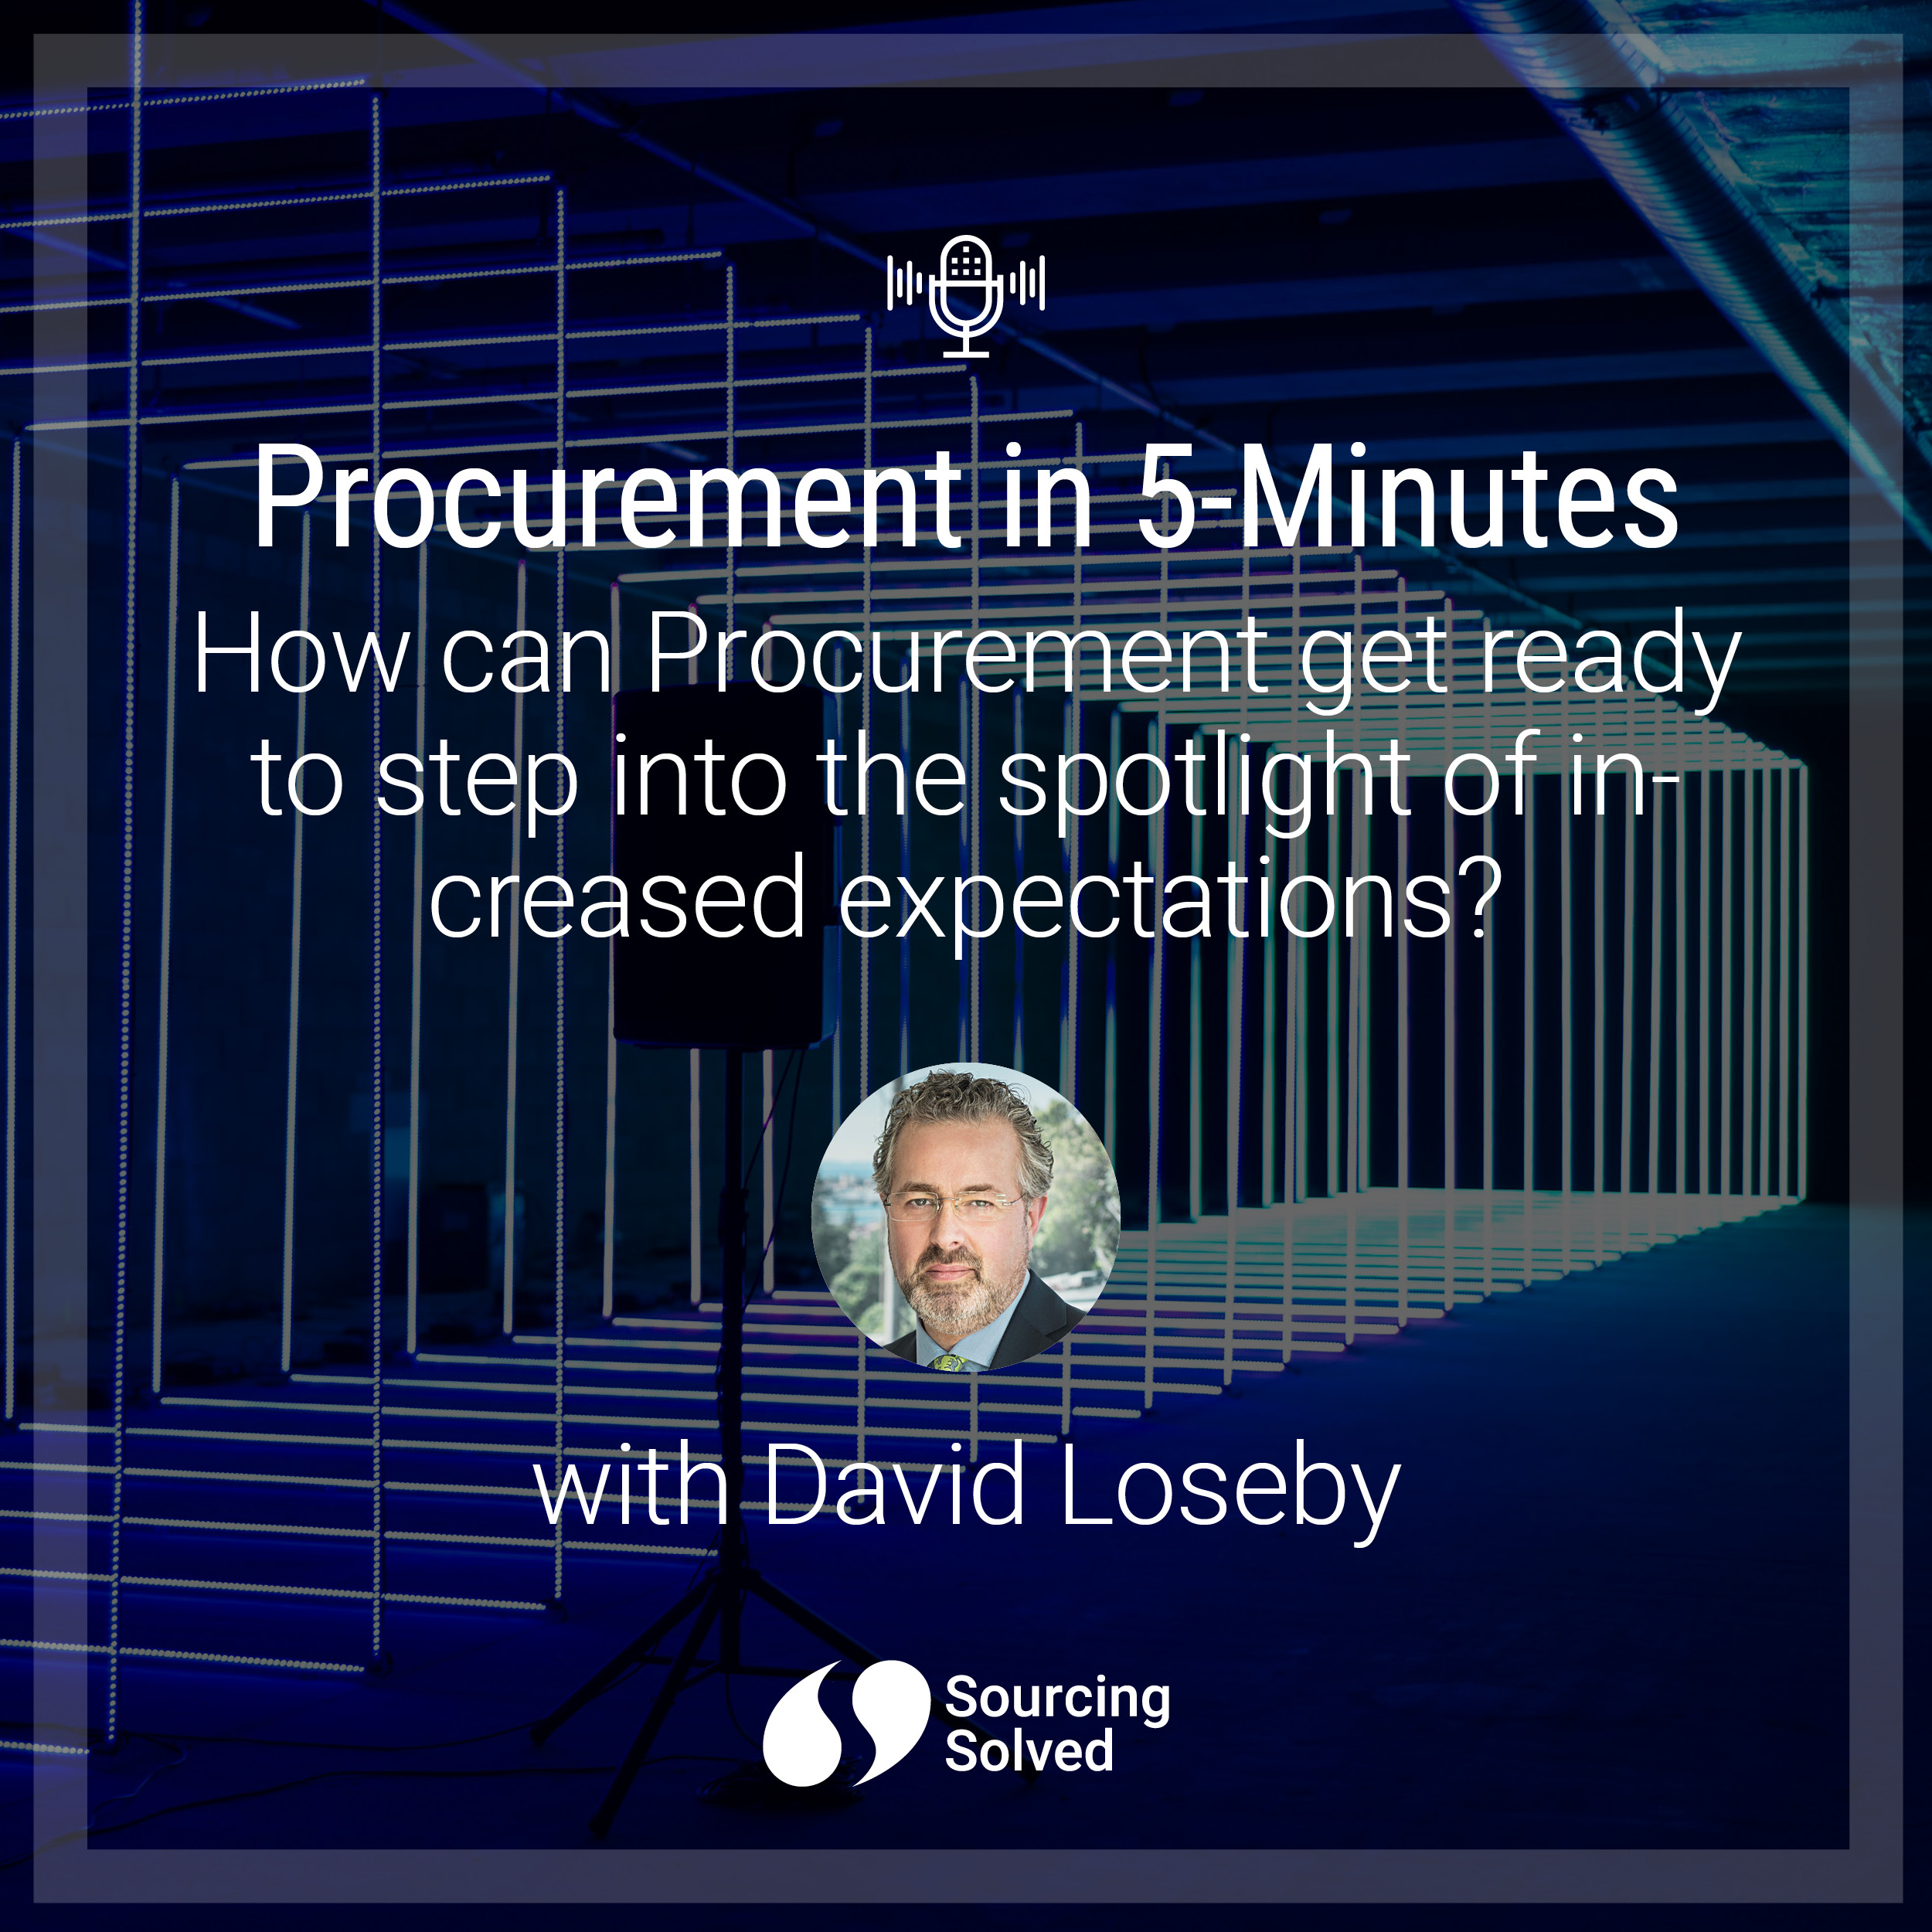 Procurement in 5-Minutes: How can procurement get ready to step into the spotlight of increased expectations